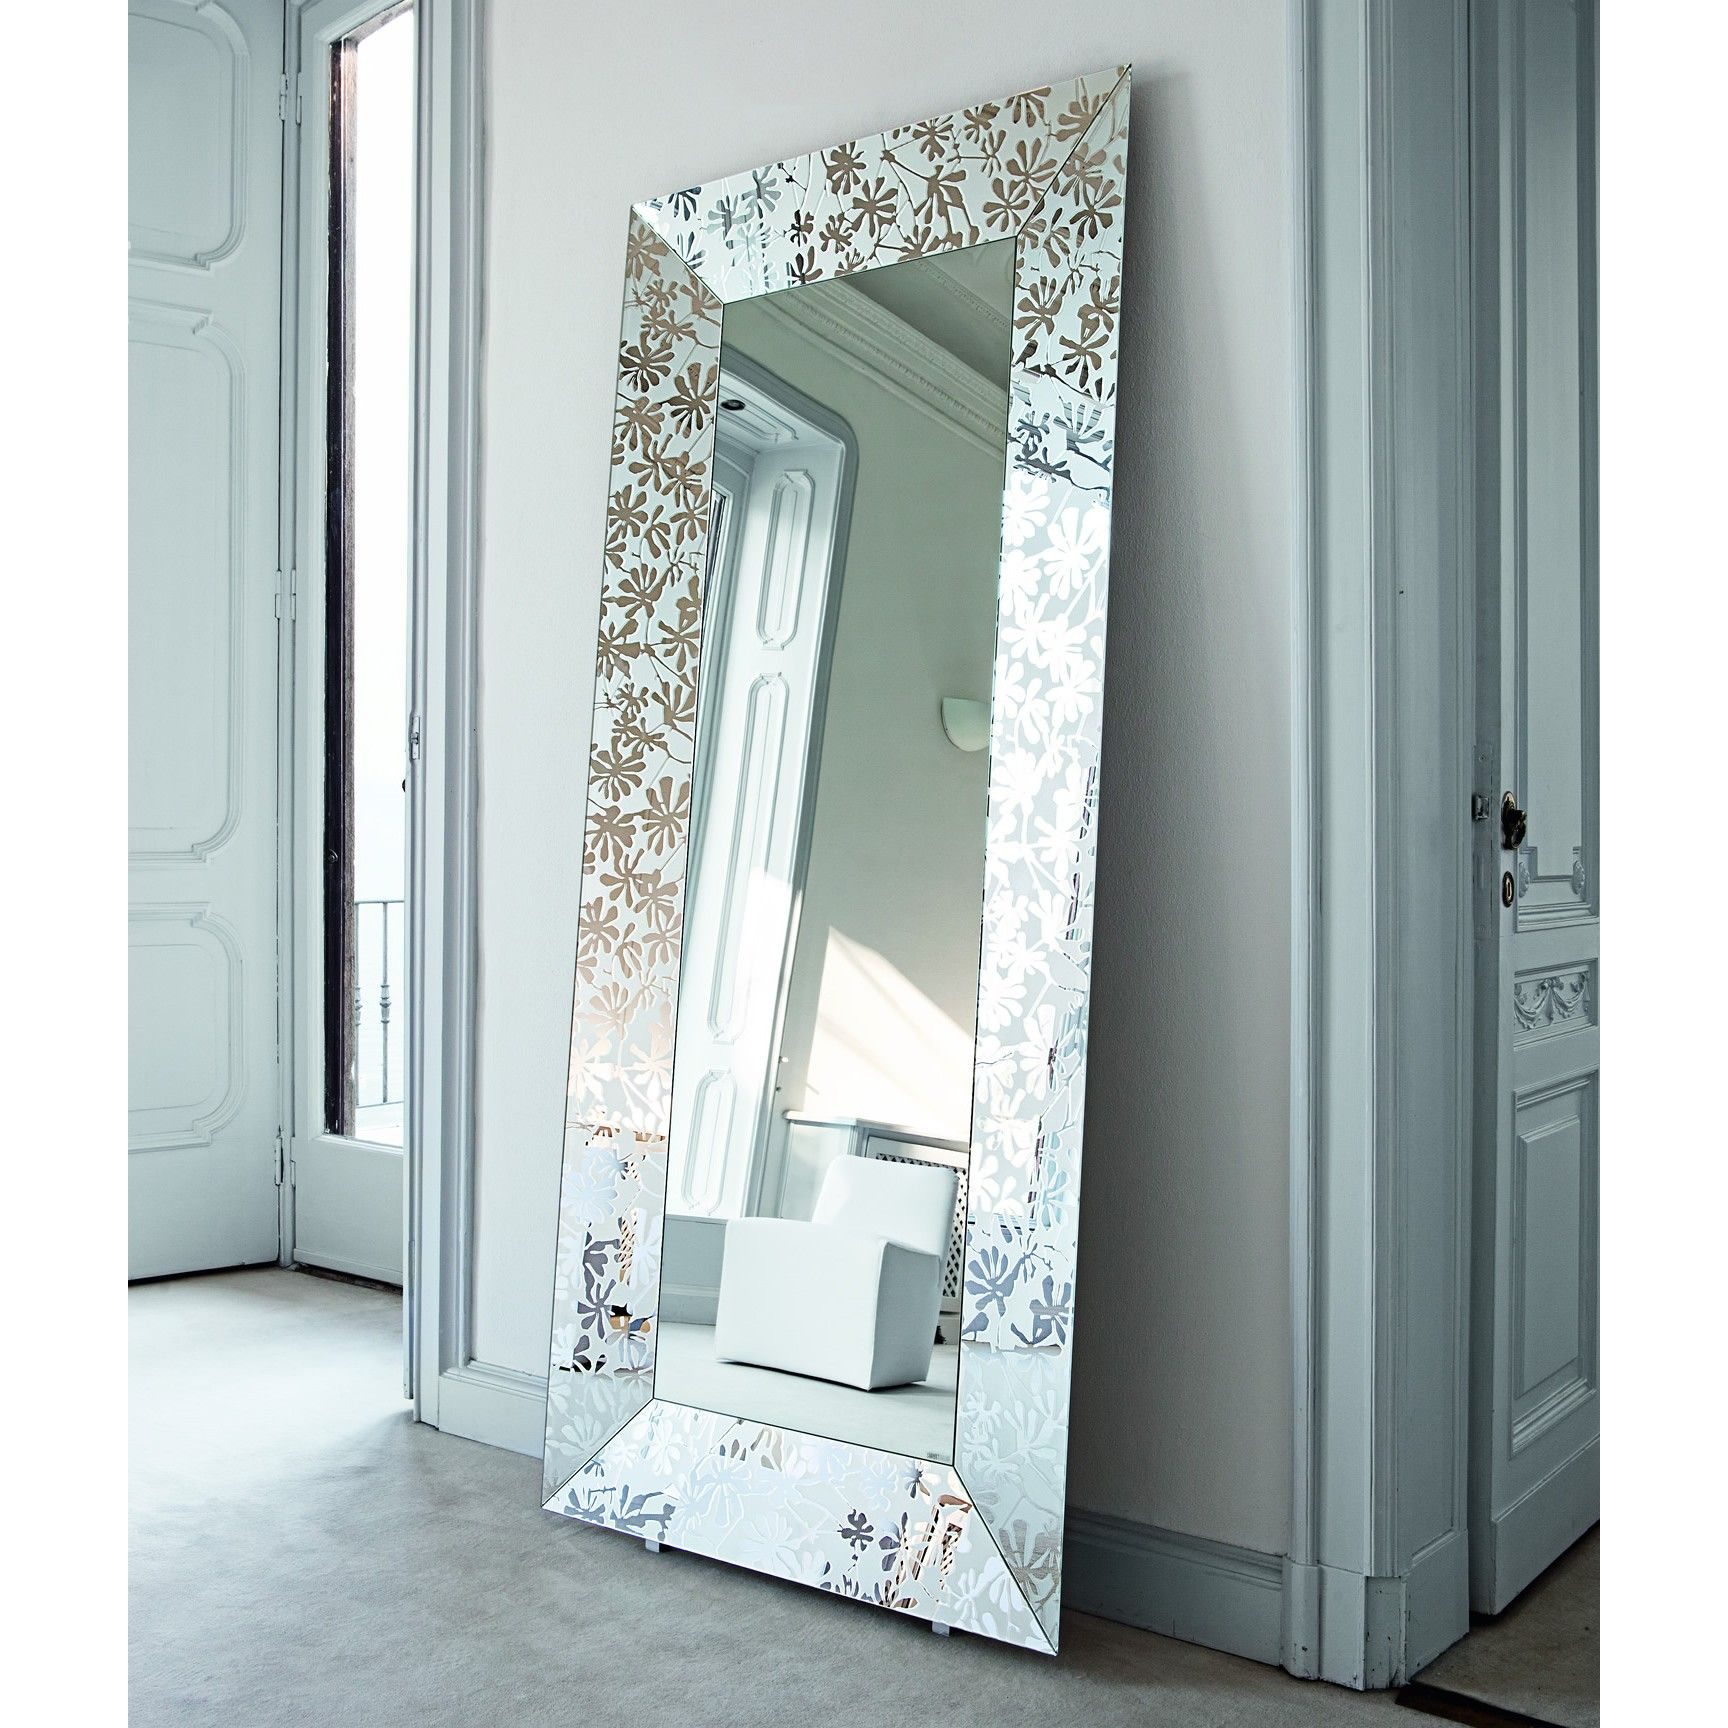 tall standing mirrors. Sovet Denver Mirror | Free Standing Uk Delivery At Harrogate Interiors Tall Mirrors L